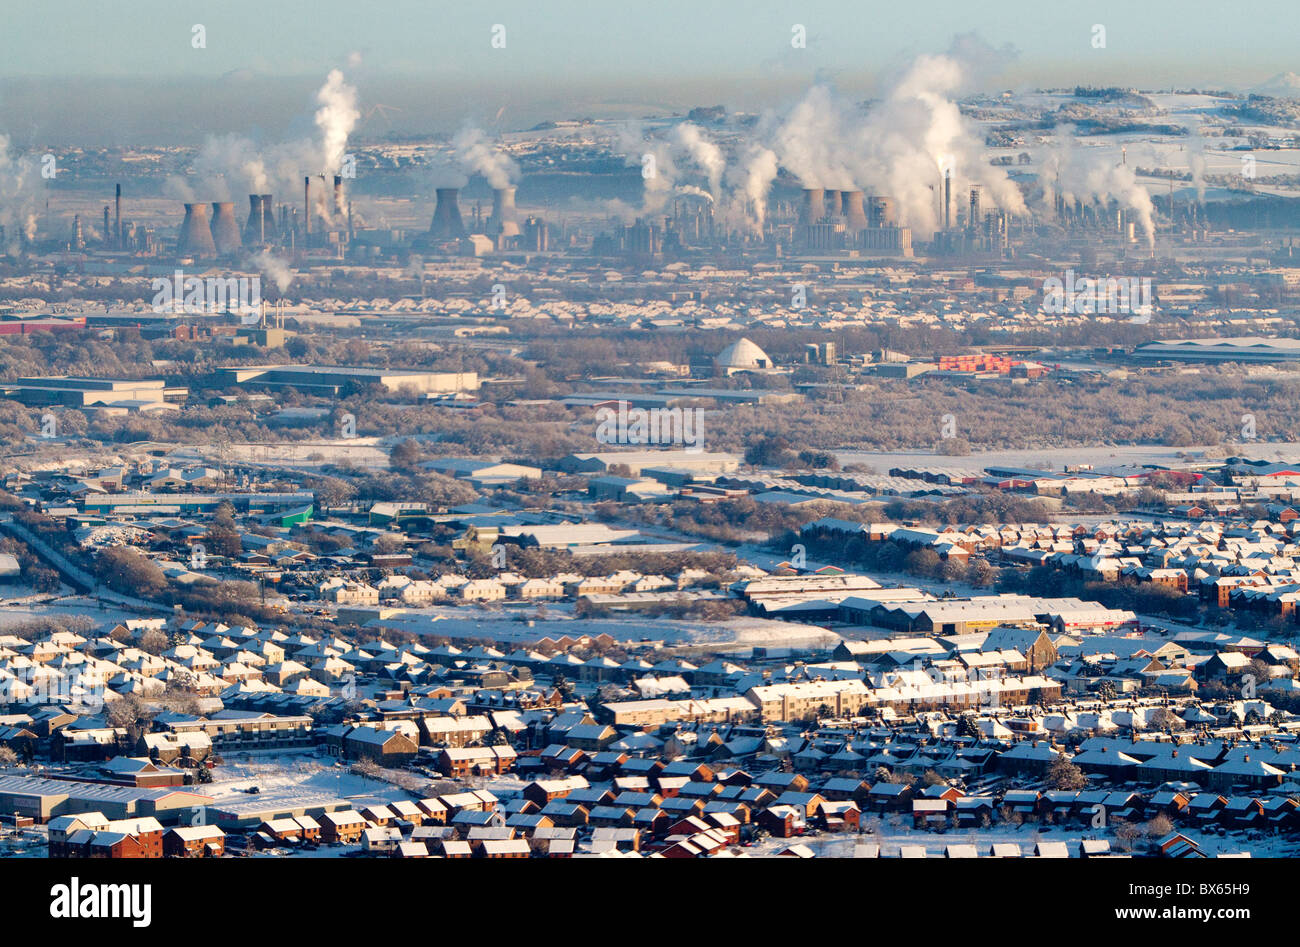 An aireal view of the Grangemouth petrochemical plant, Falkirk, Scotland. - Stock Image